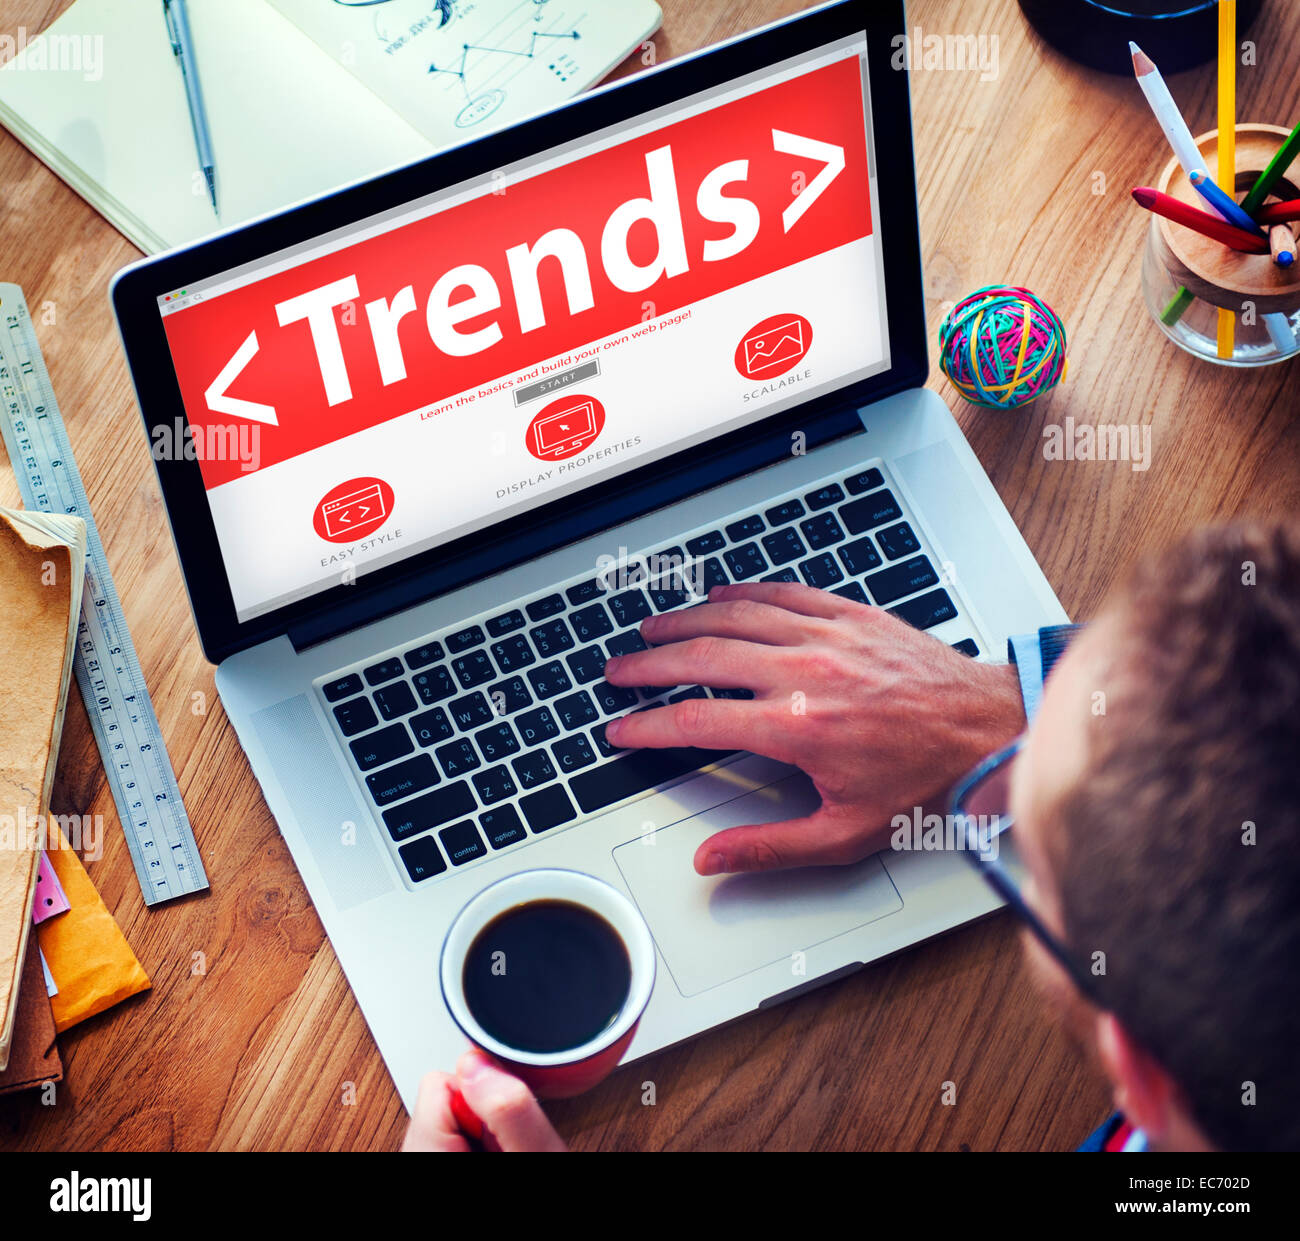 New Trends Future Bussiness Growing Concept - Stock Image